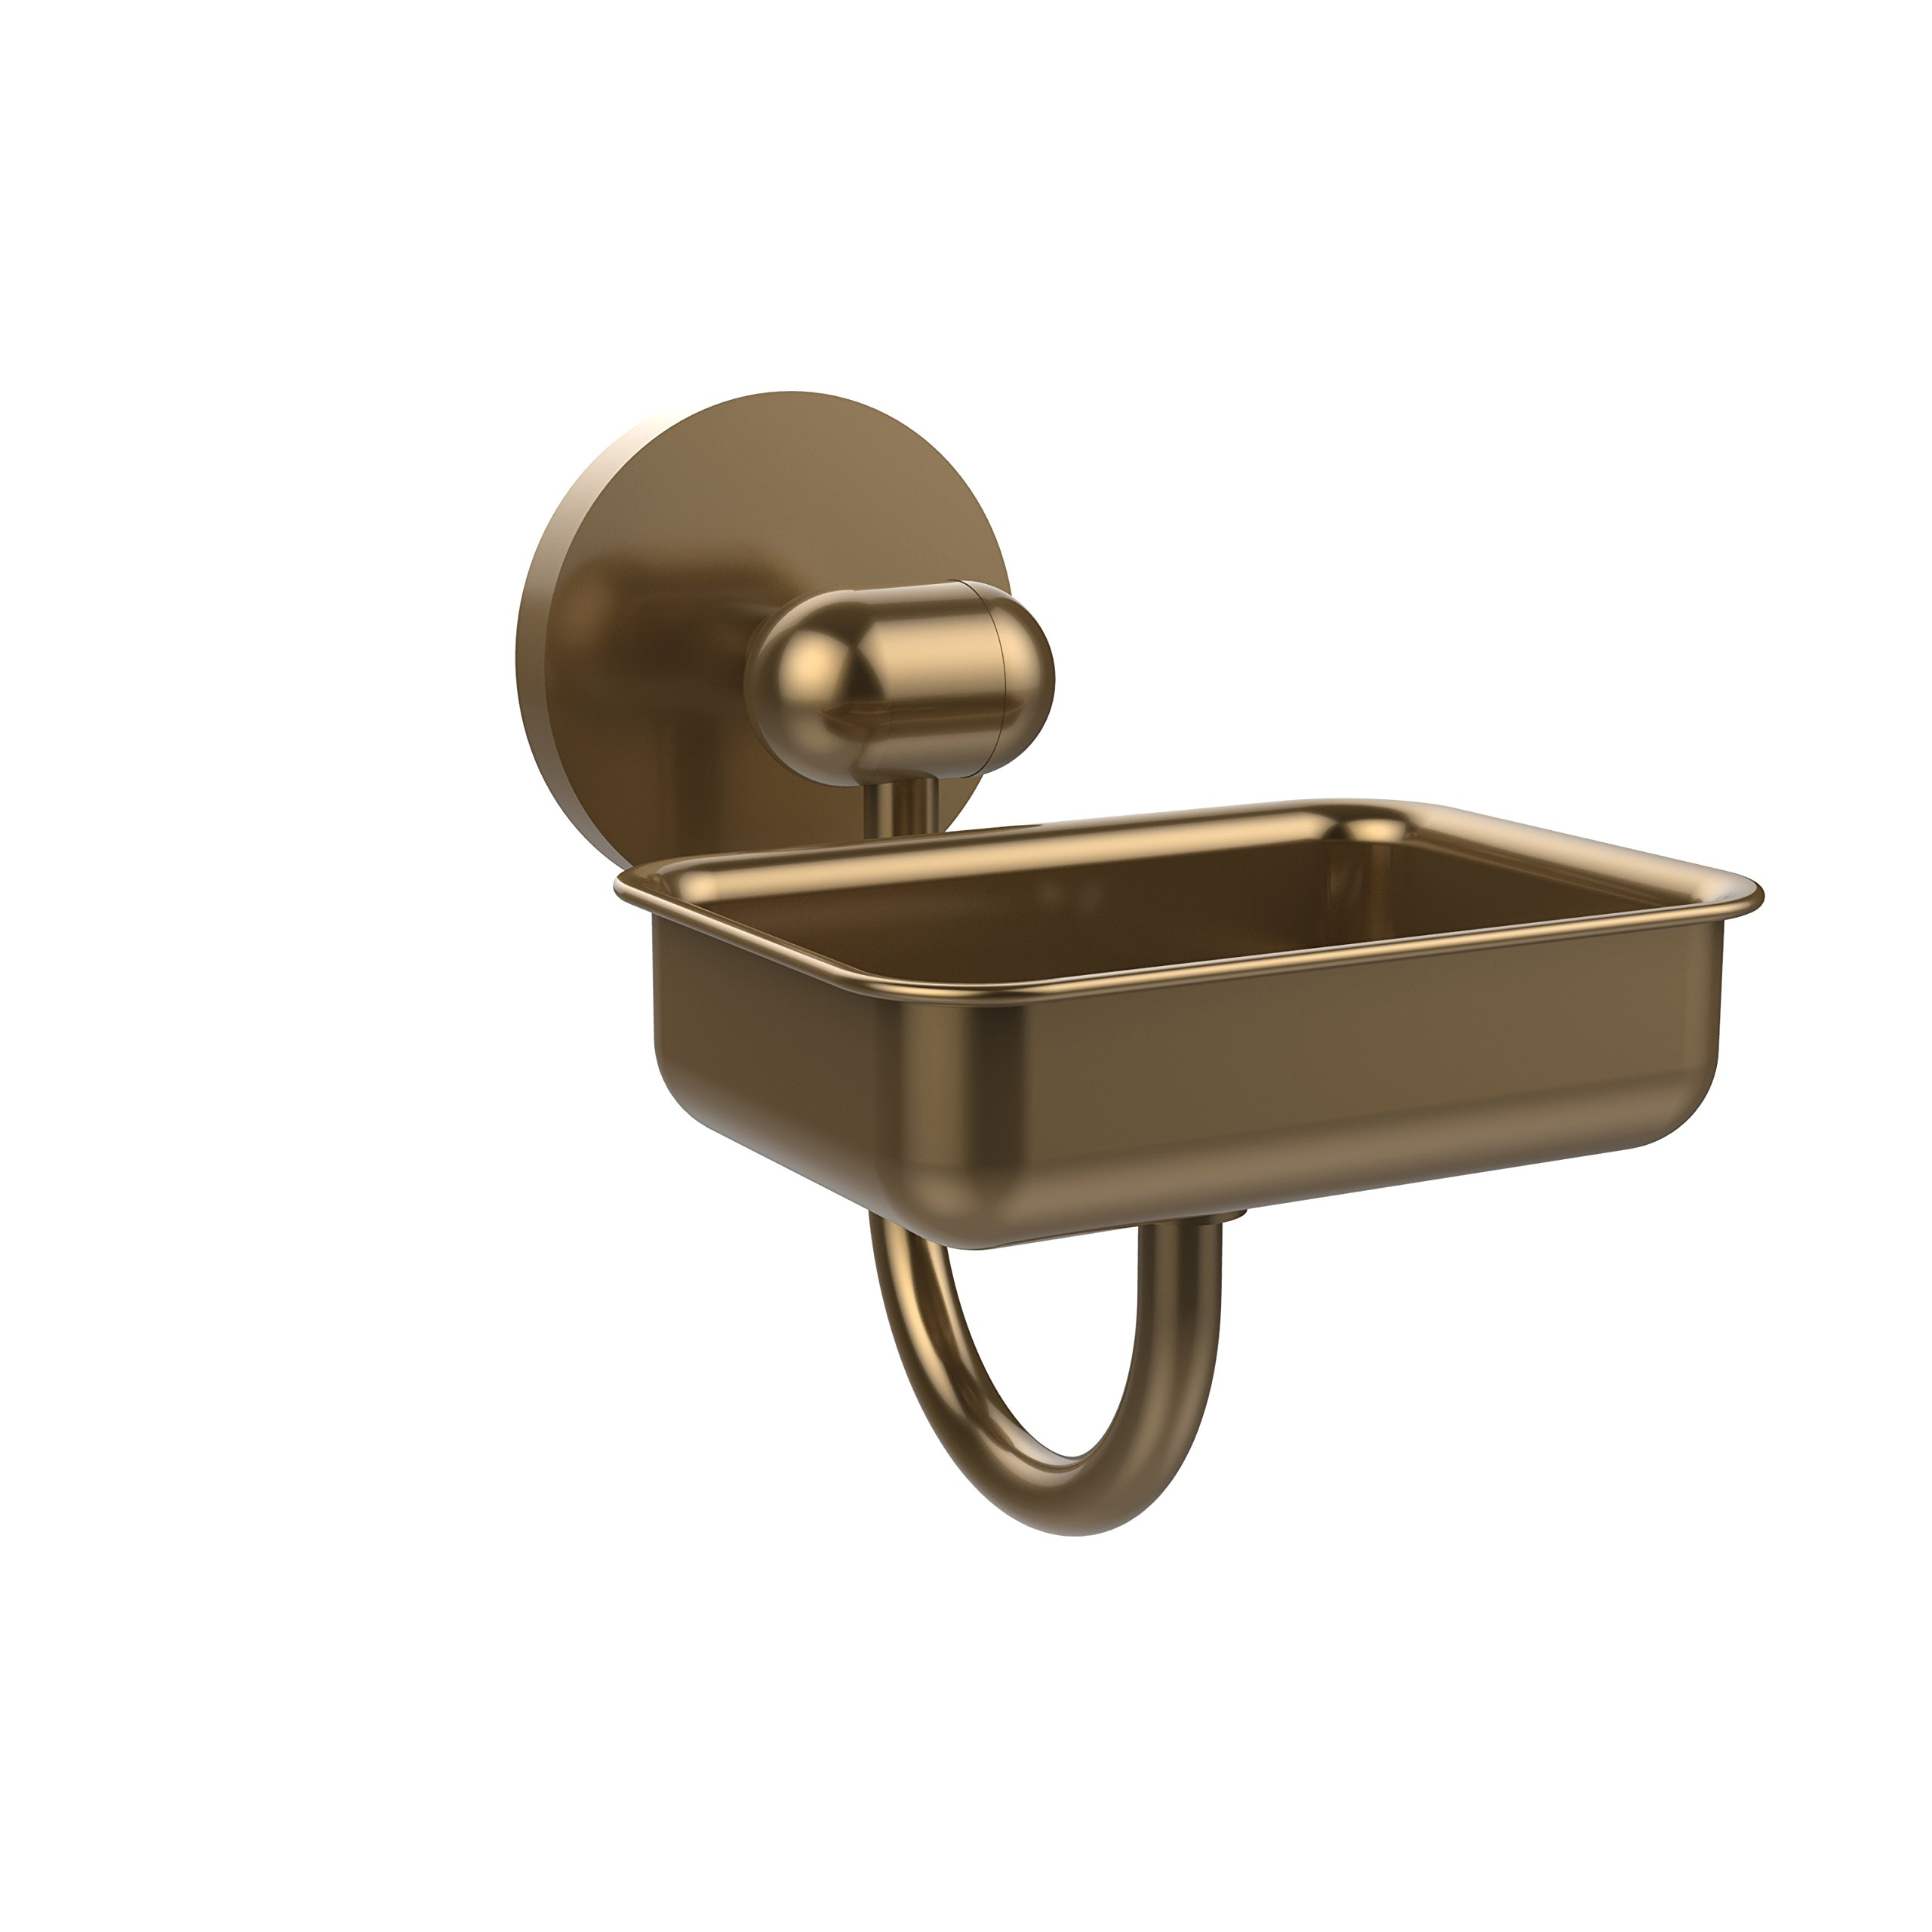 Allied Brass TA-32-BBR Tango Collection Wall Mounted Soap Dish Brushed Bronze